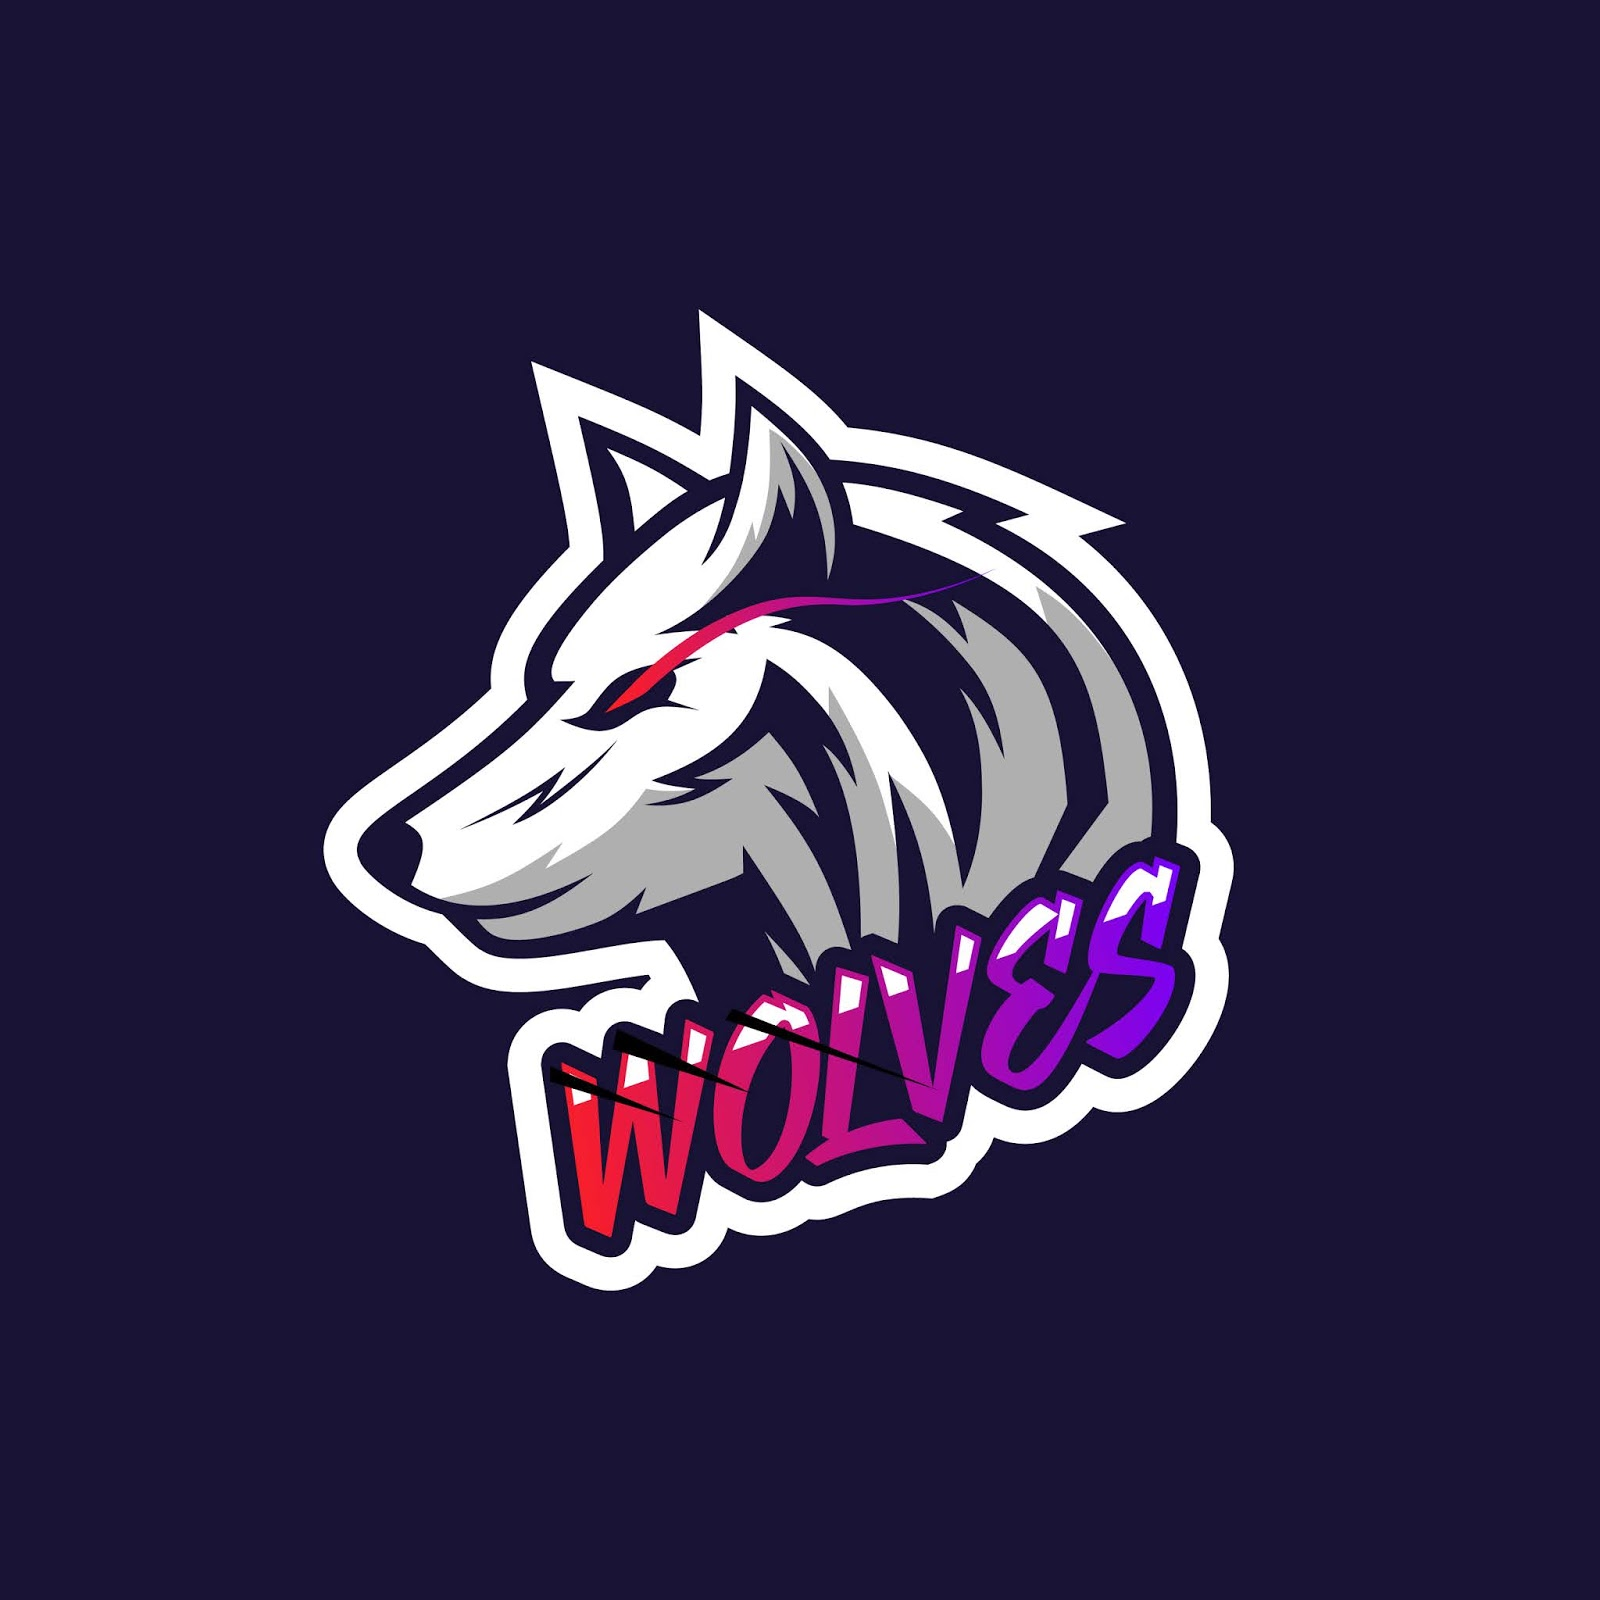 Simple Wolves Head Logo Illustration Gaming Squad Free Download Vector CDR, AI, EPS and PNG Formats